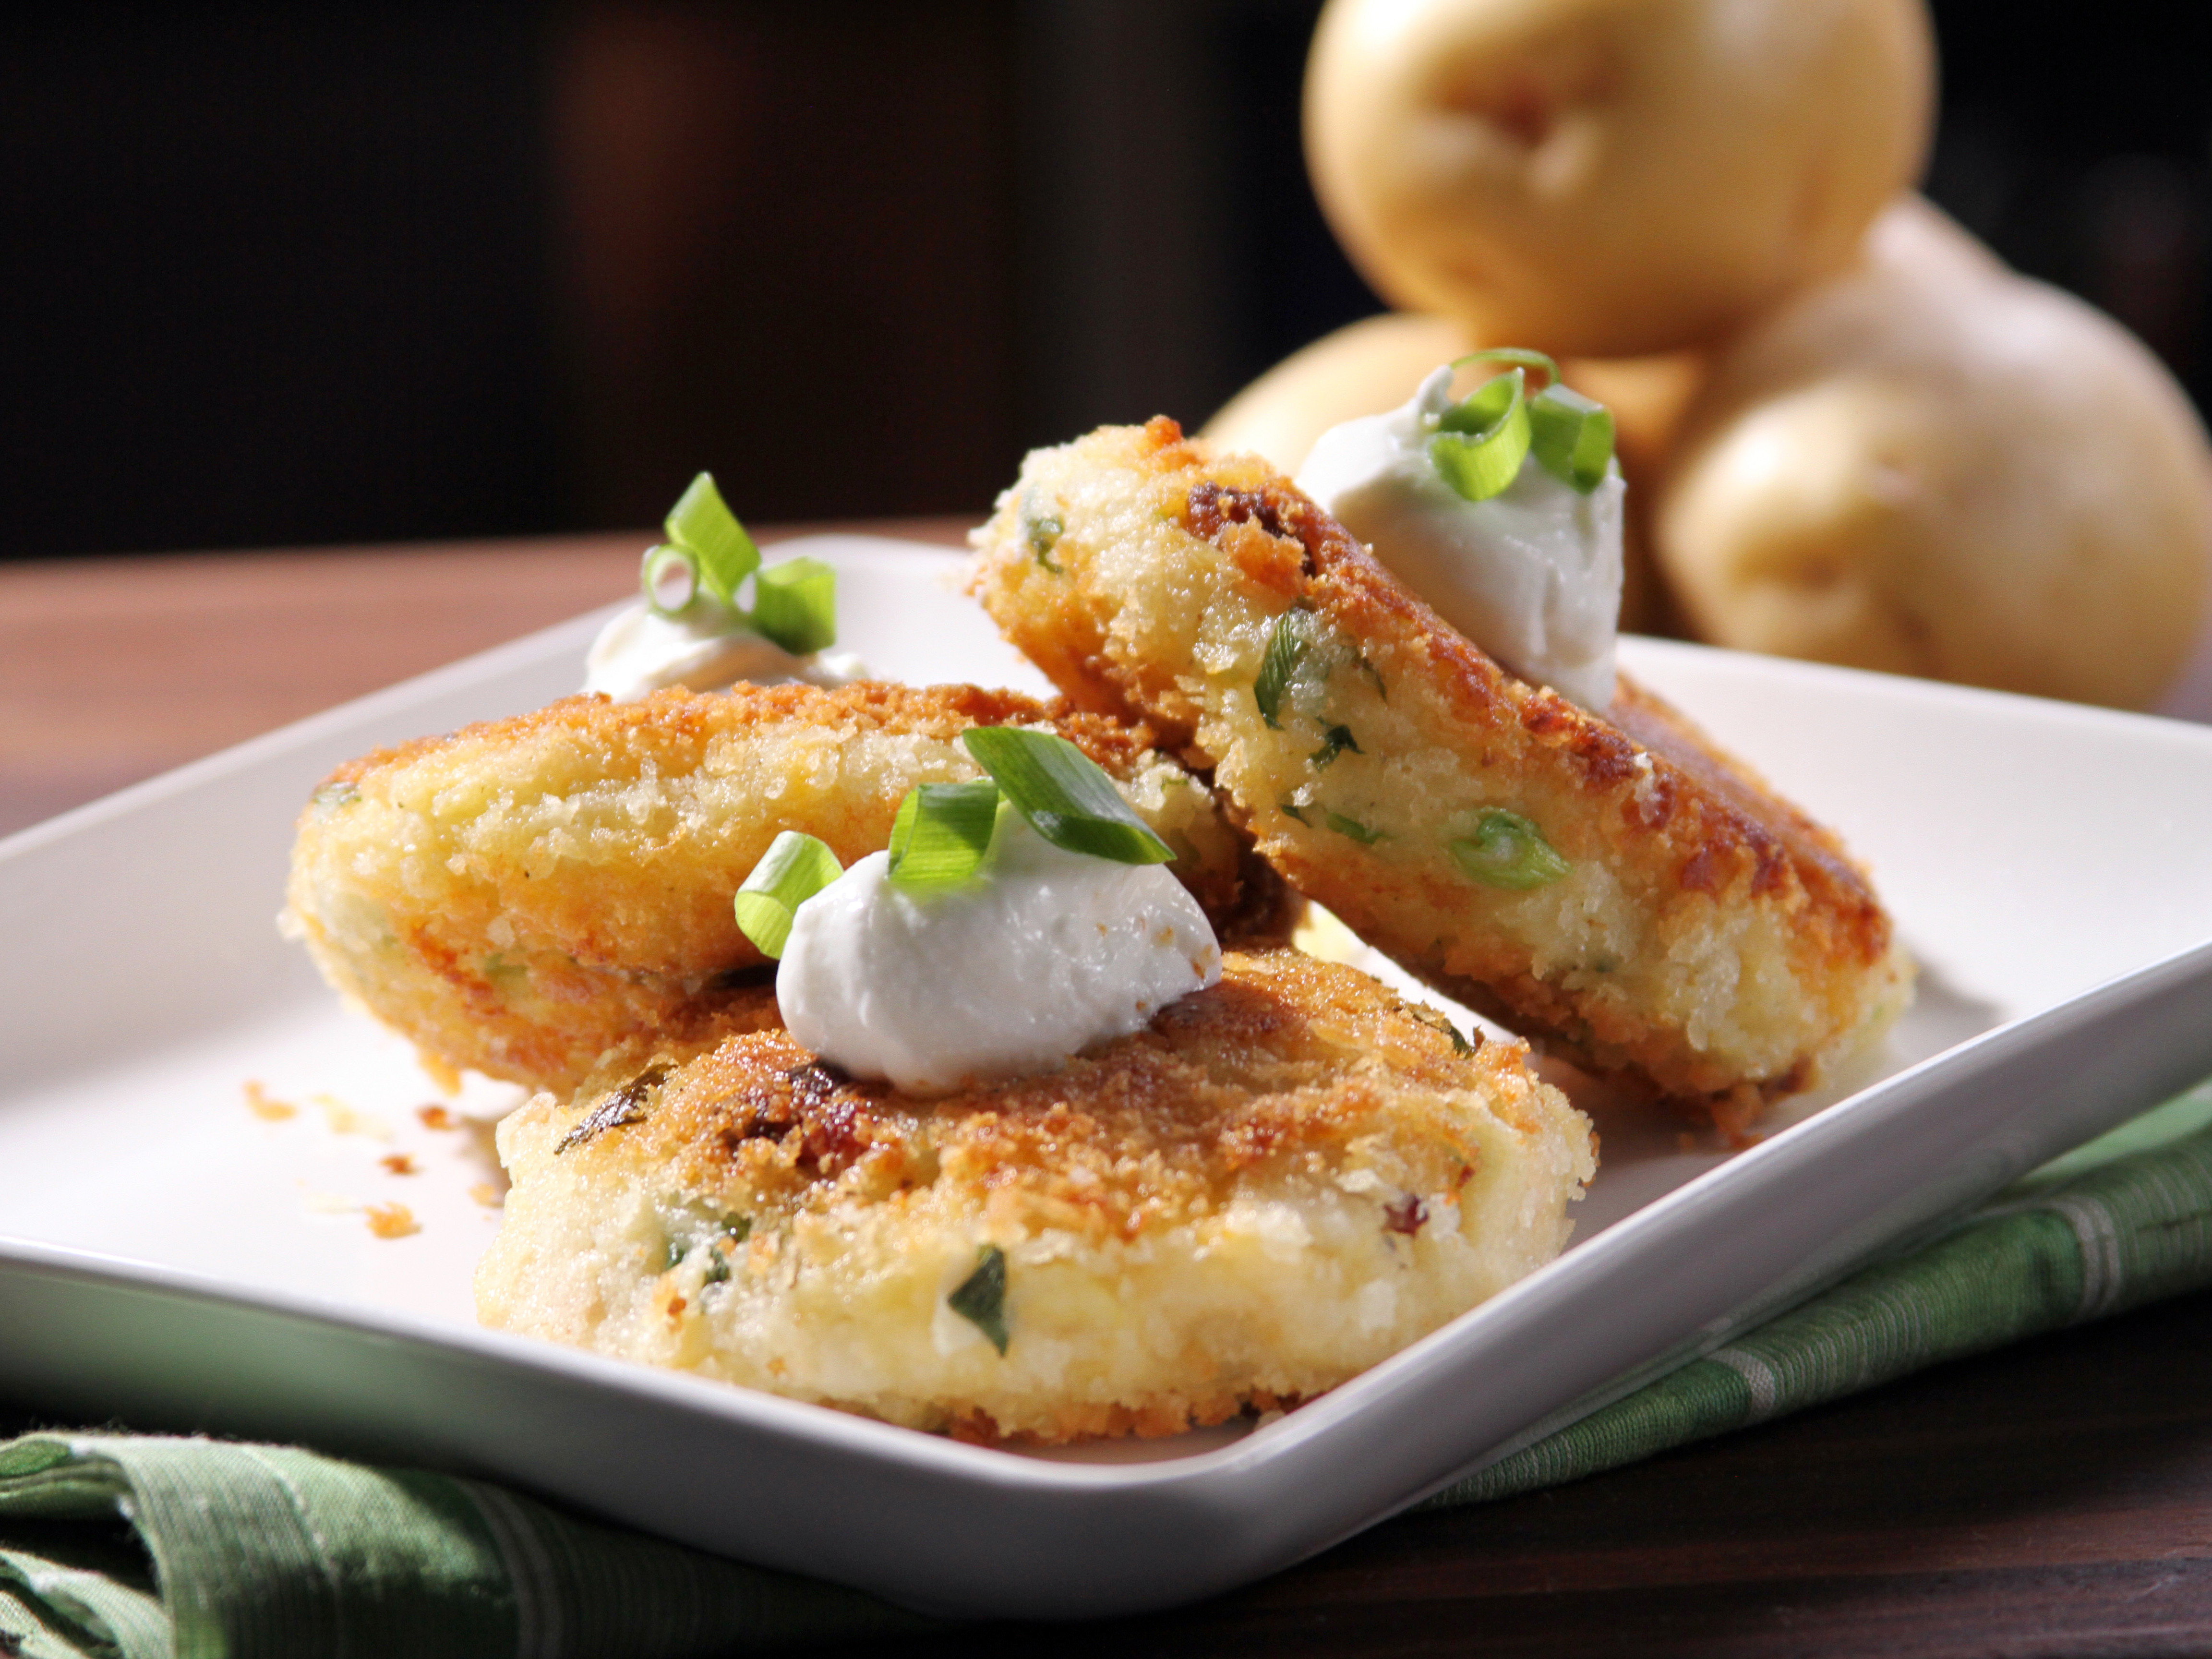 Mashed Potato Cakes Paula Deen  What to do with Leftover Mashed Potatoes